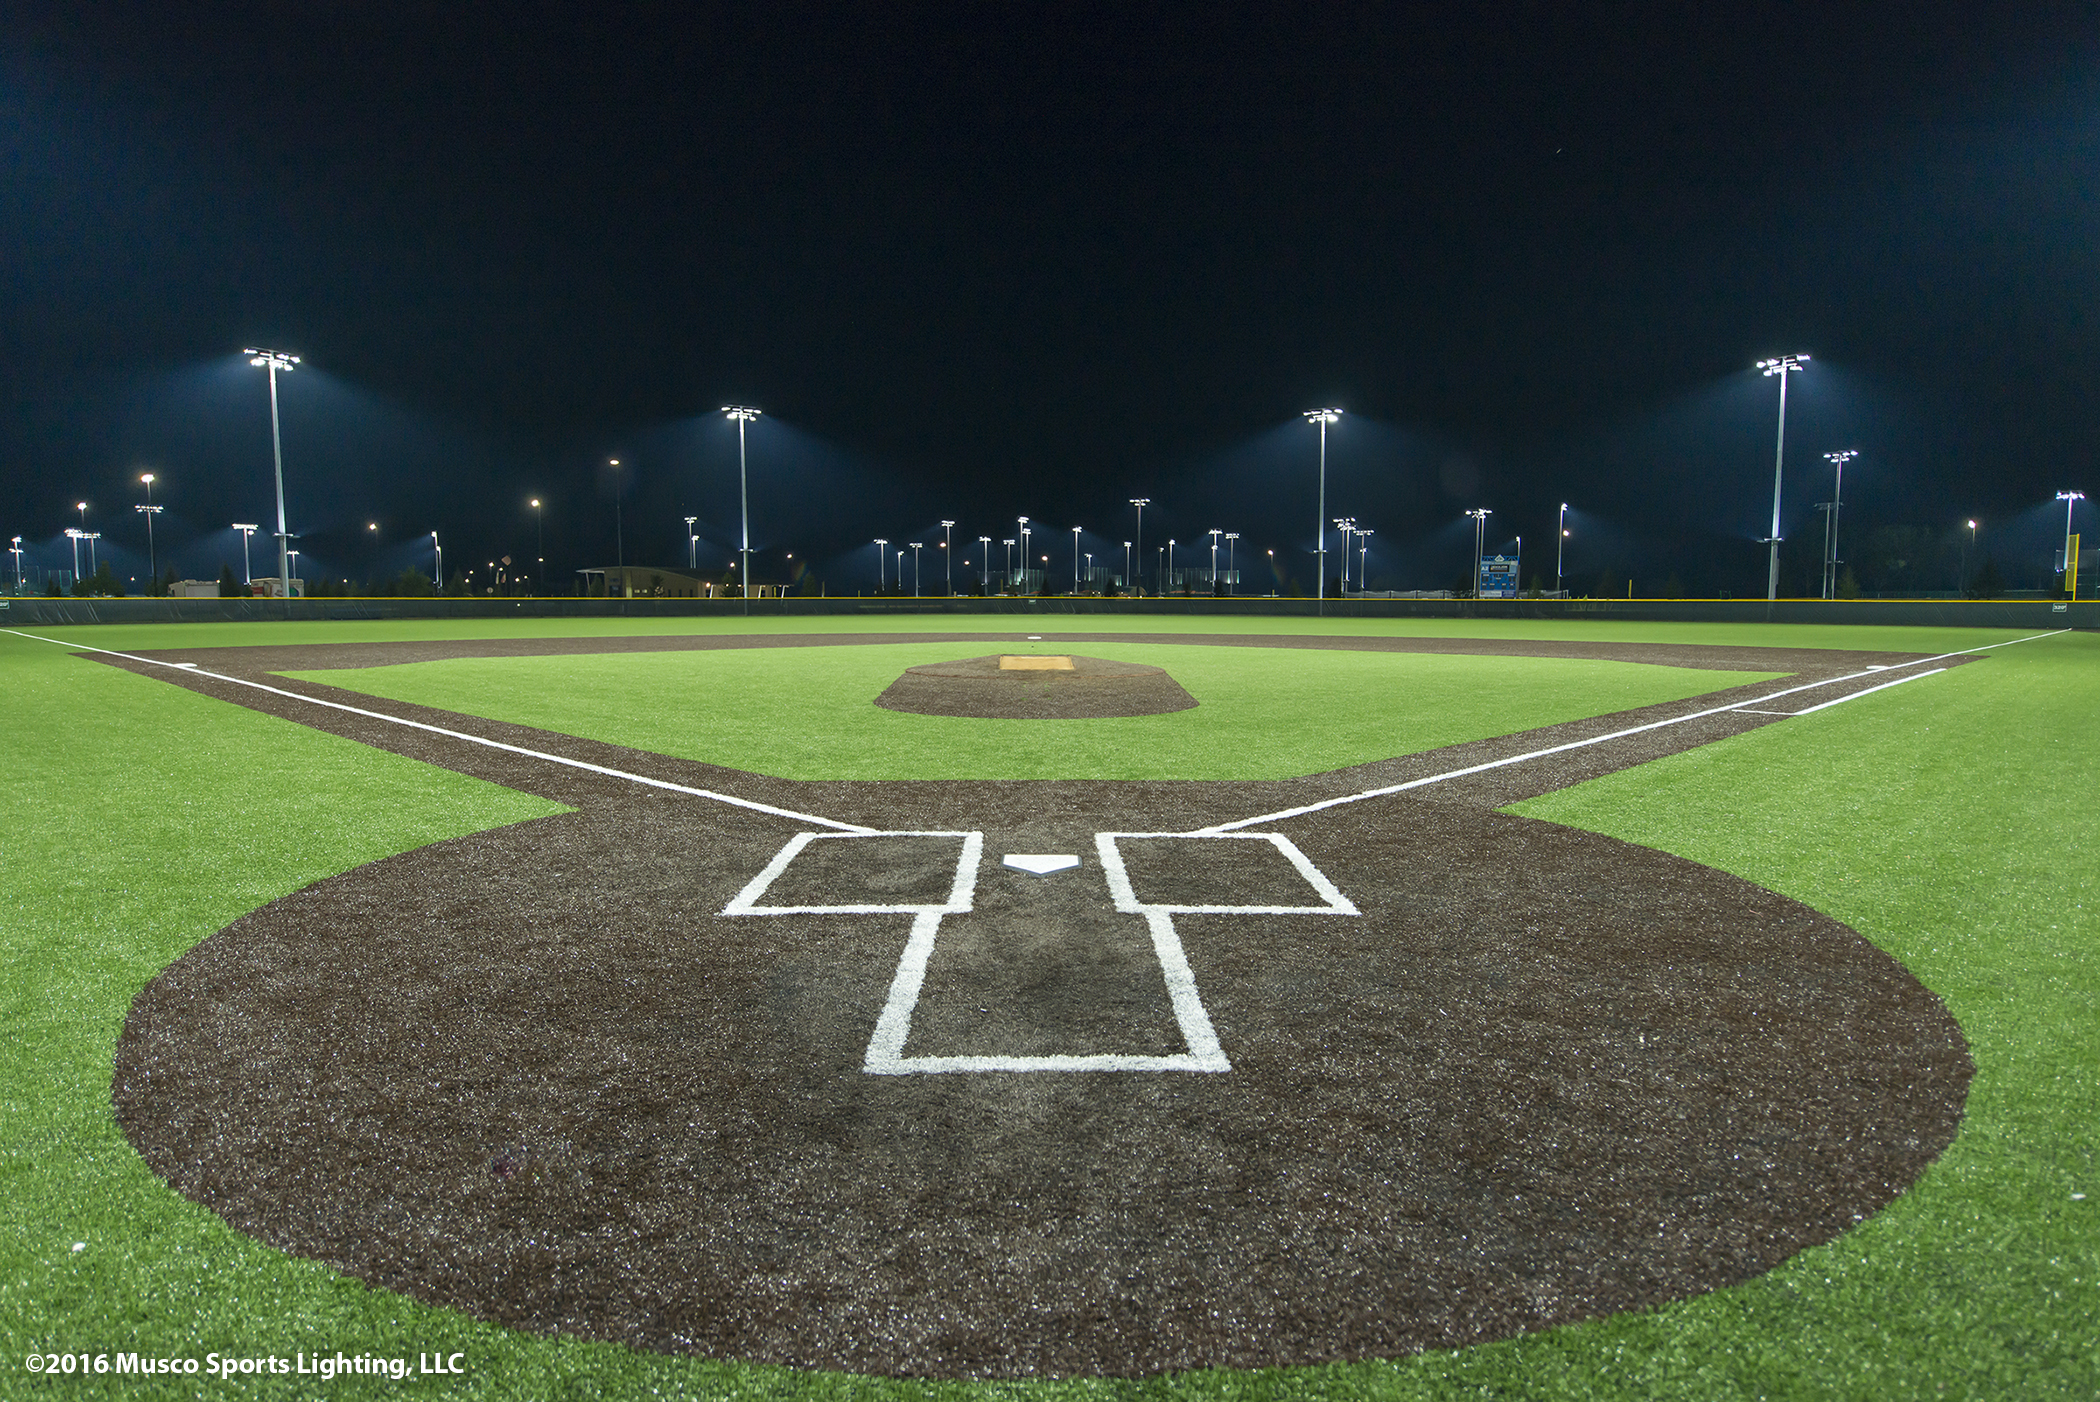 state of the art led lighting system unveiled at seminole county sports complex business wire